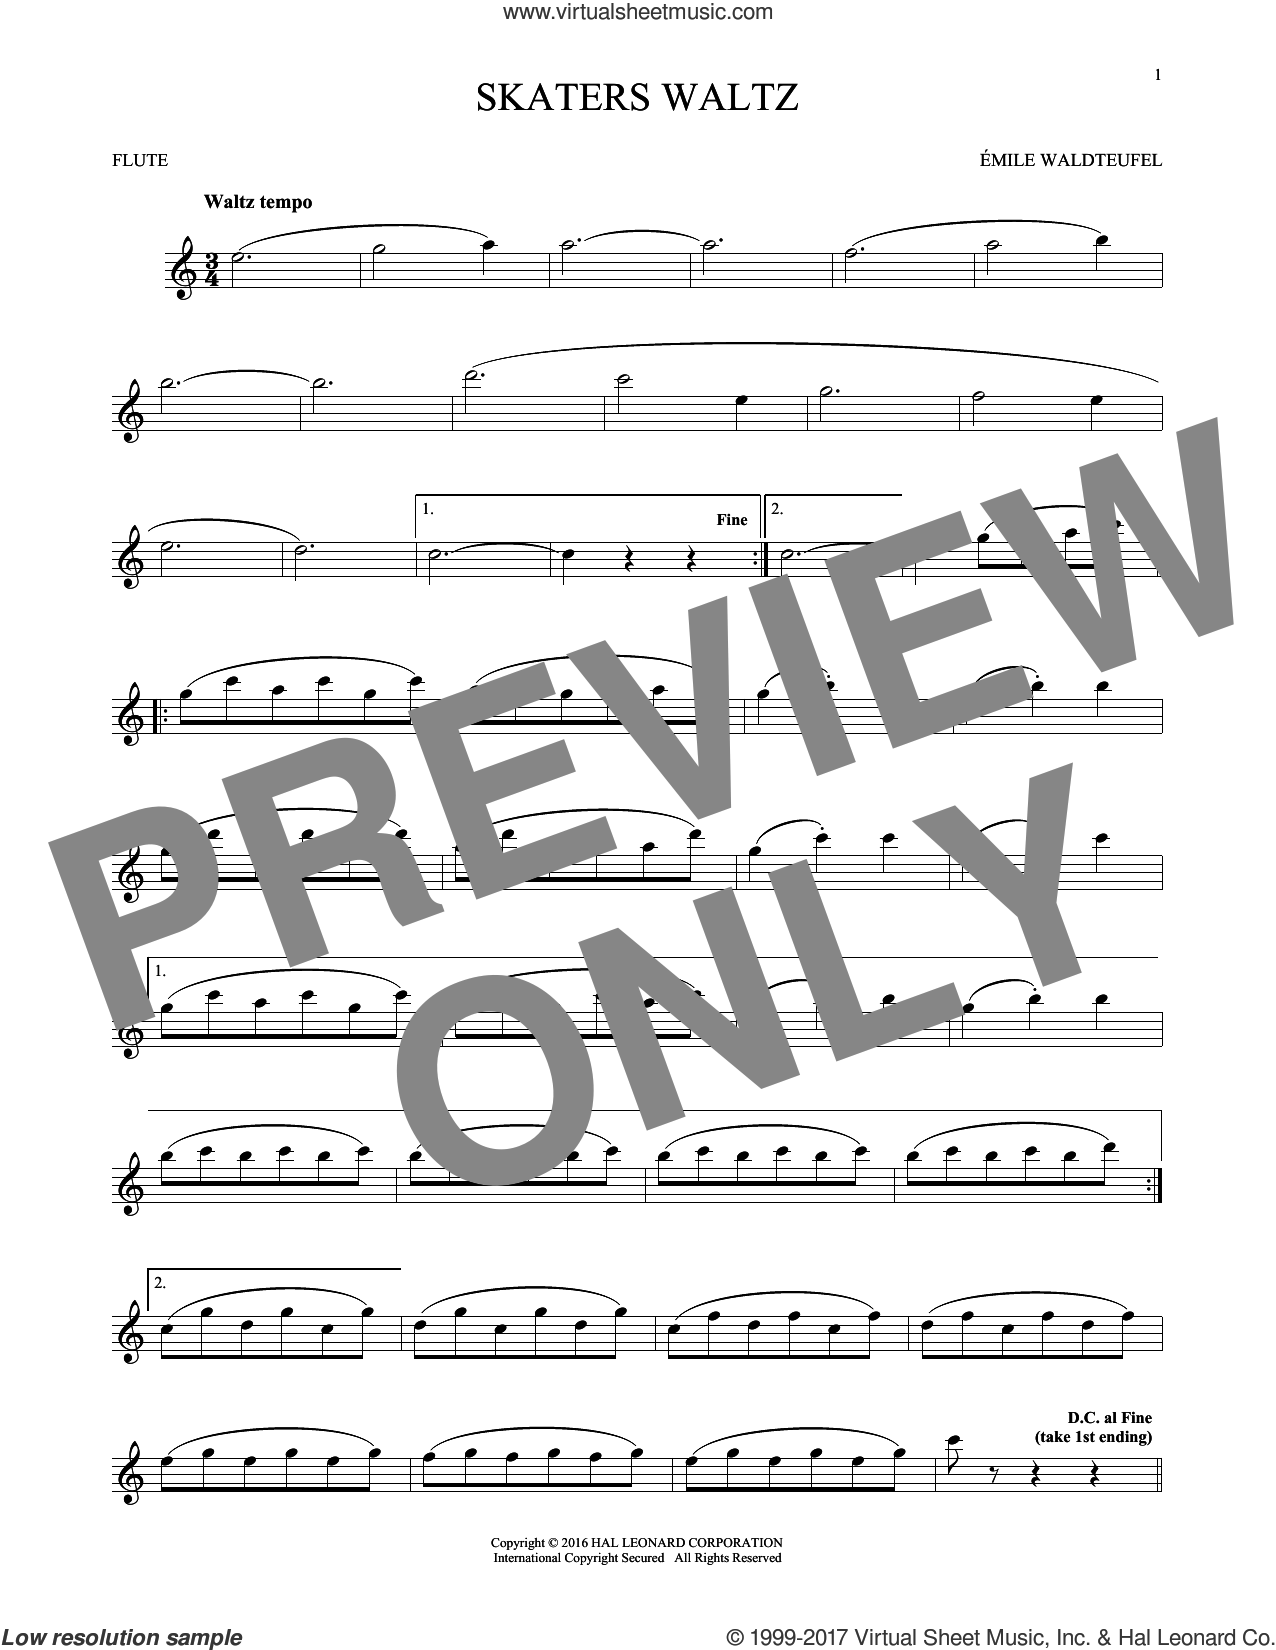 The Skaters (Waltz) sheet music for flute solo by Emile Waldteufel, classical score, intermediate skill level